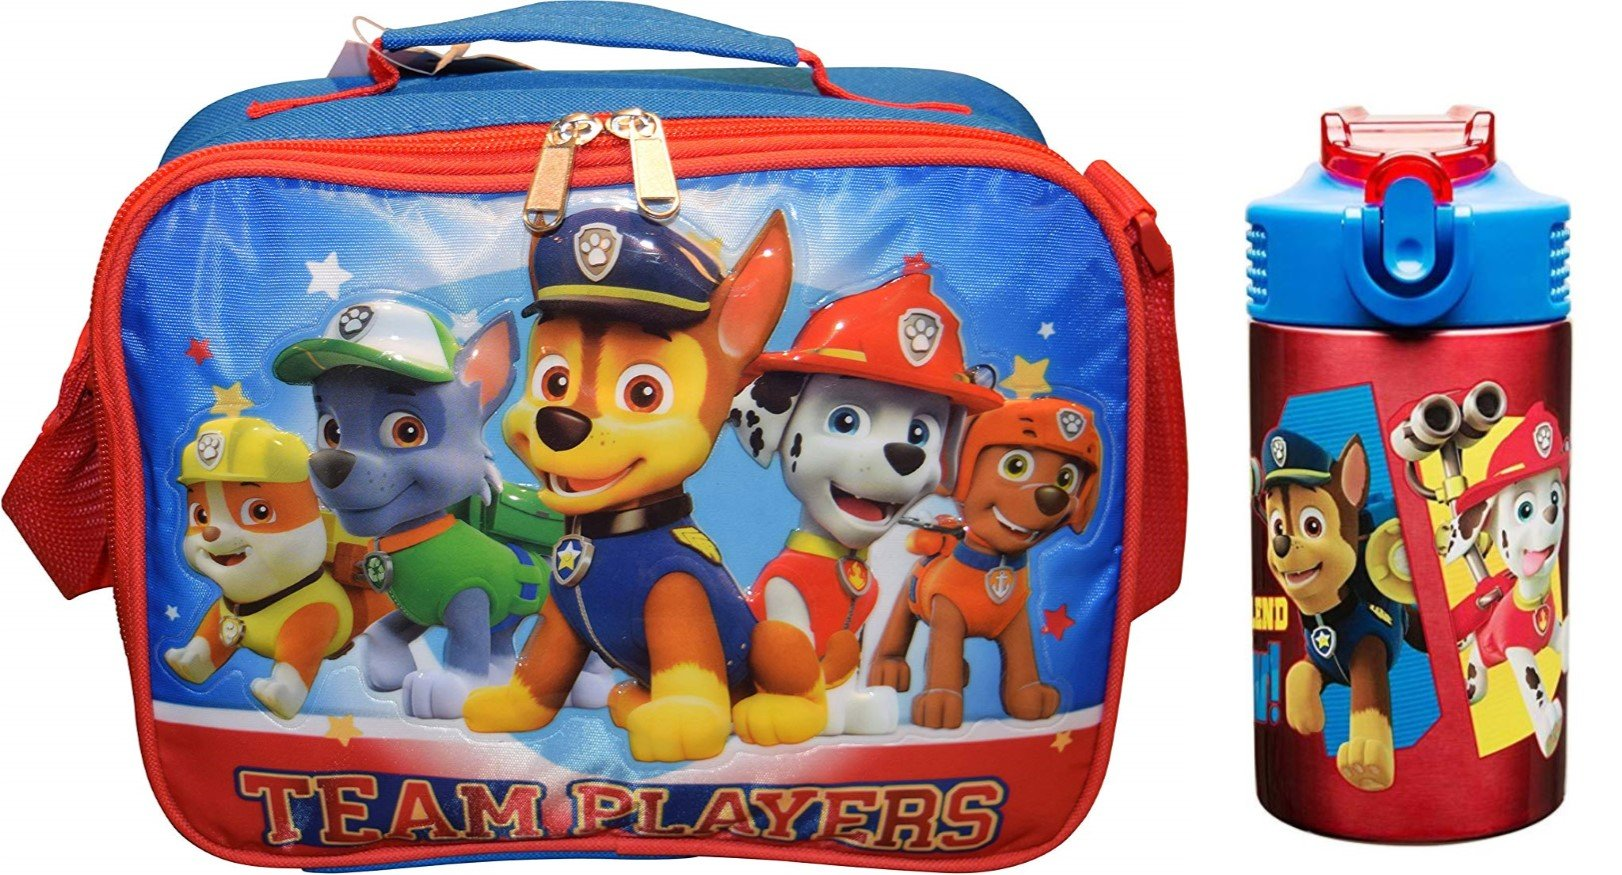 Paw Patrol Insulated Lunch Tote PLUS Stainless Steel Drink Bottle